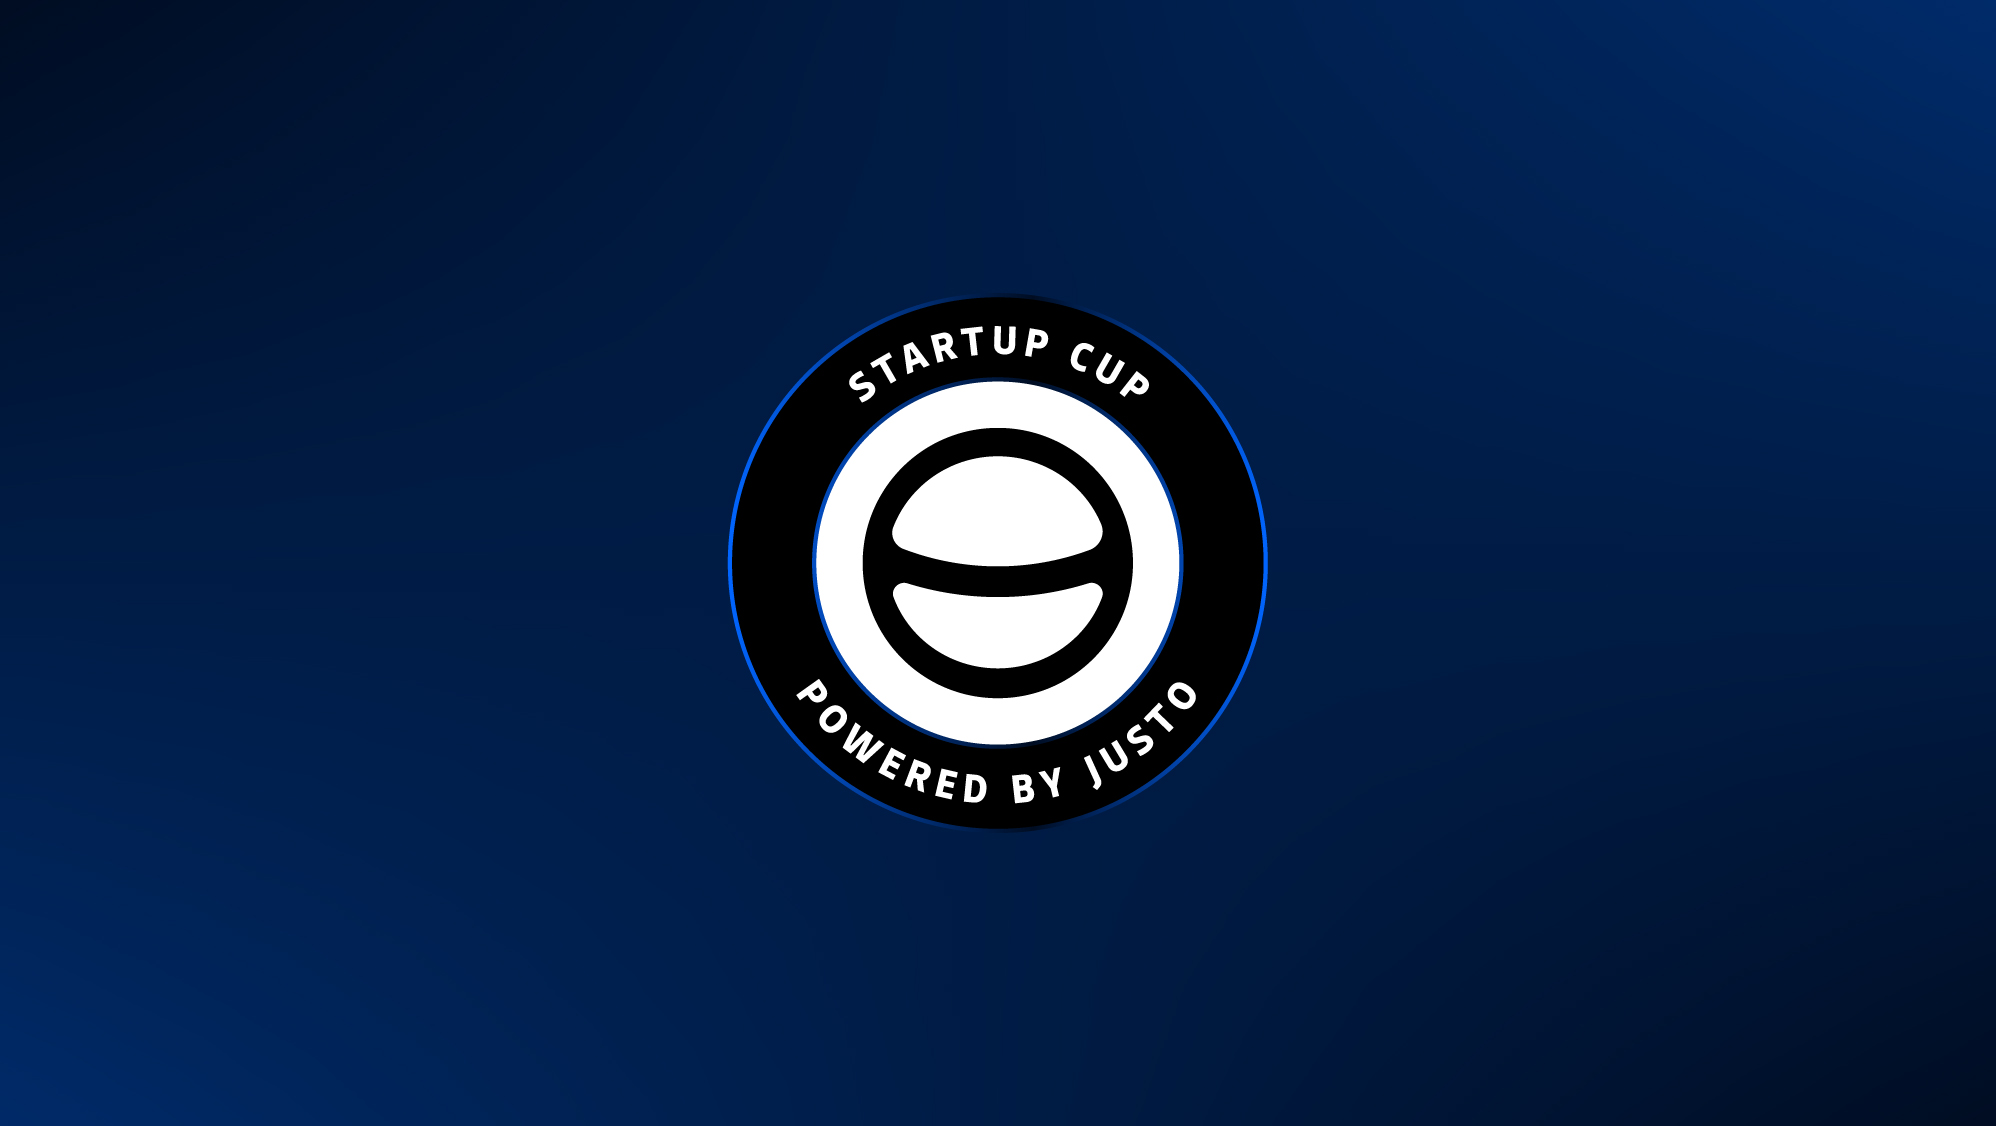 StartUp Cup by Justo Chile